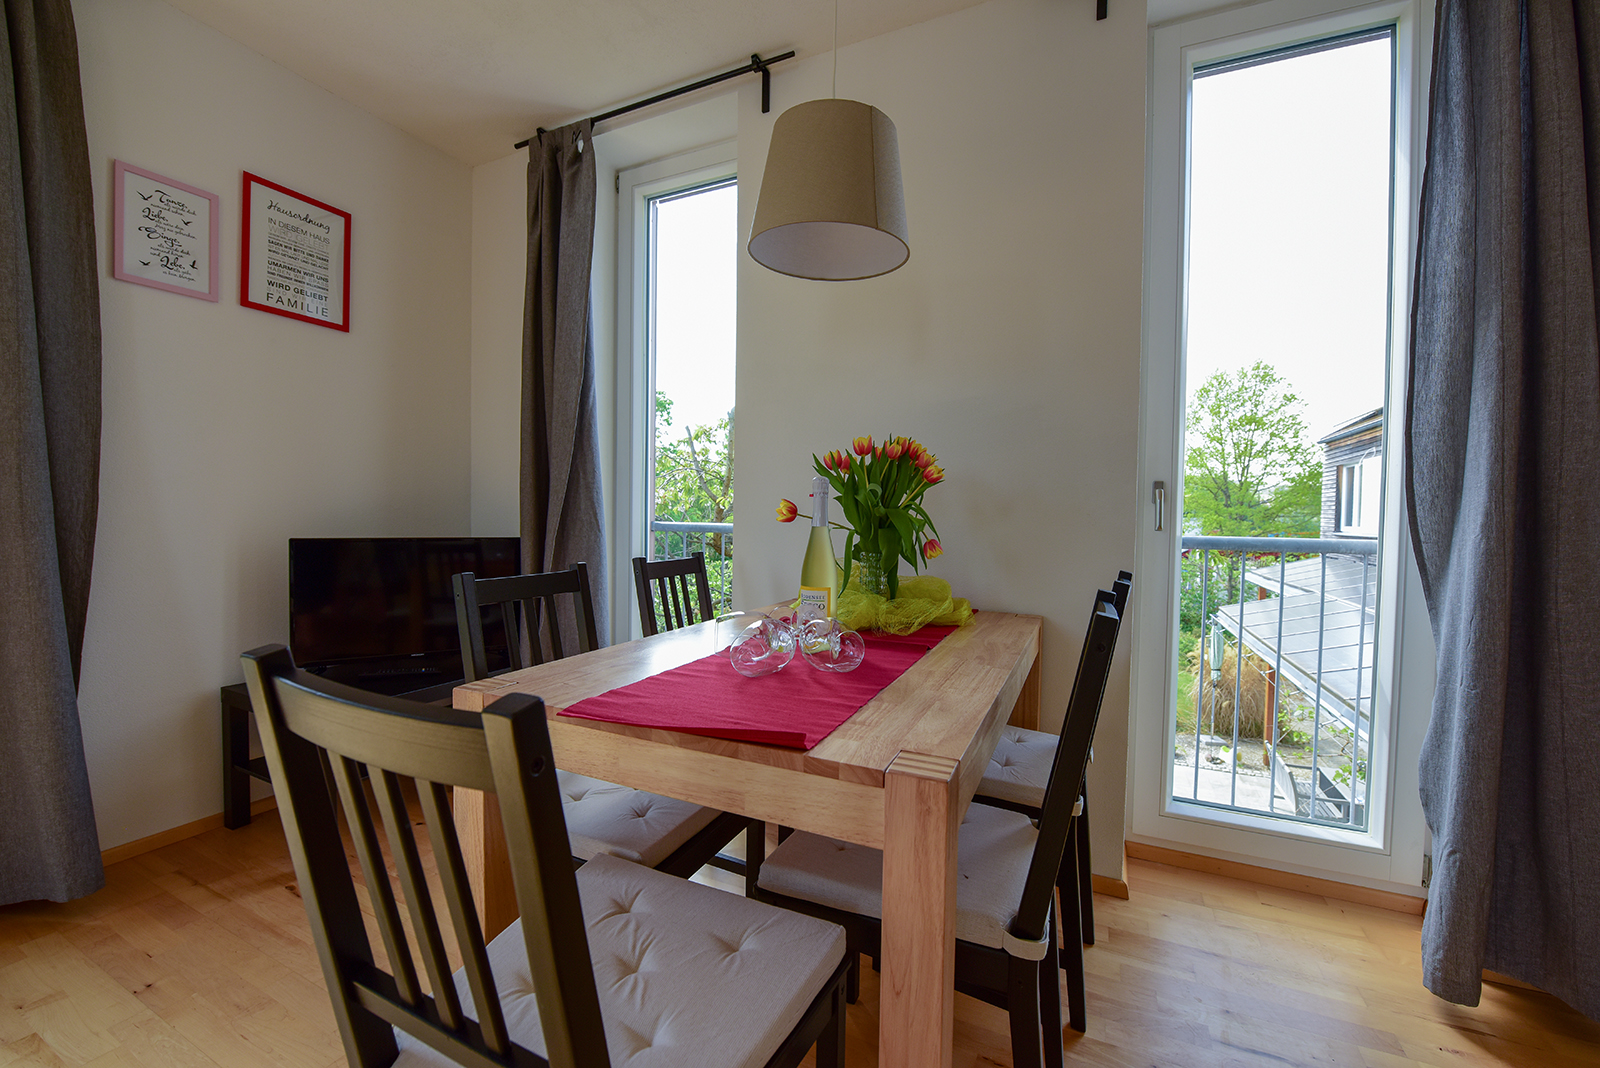 Holiday apartments on Lake Constance: Seeblüte - Dining Area